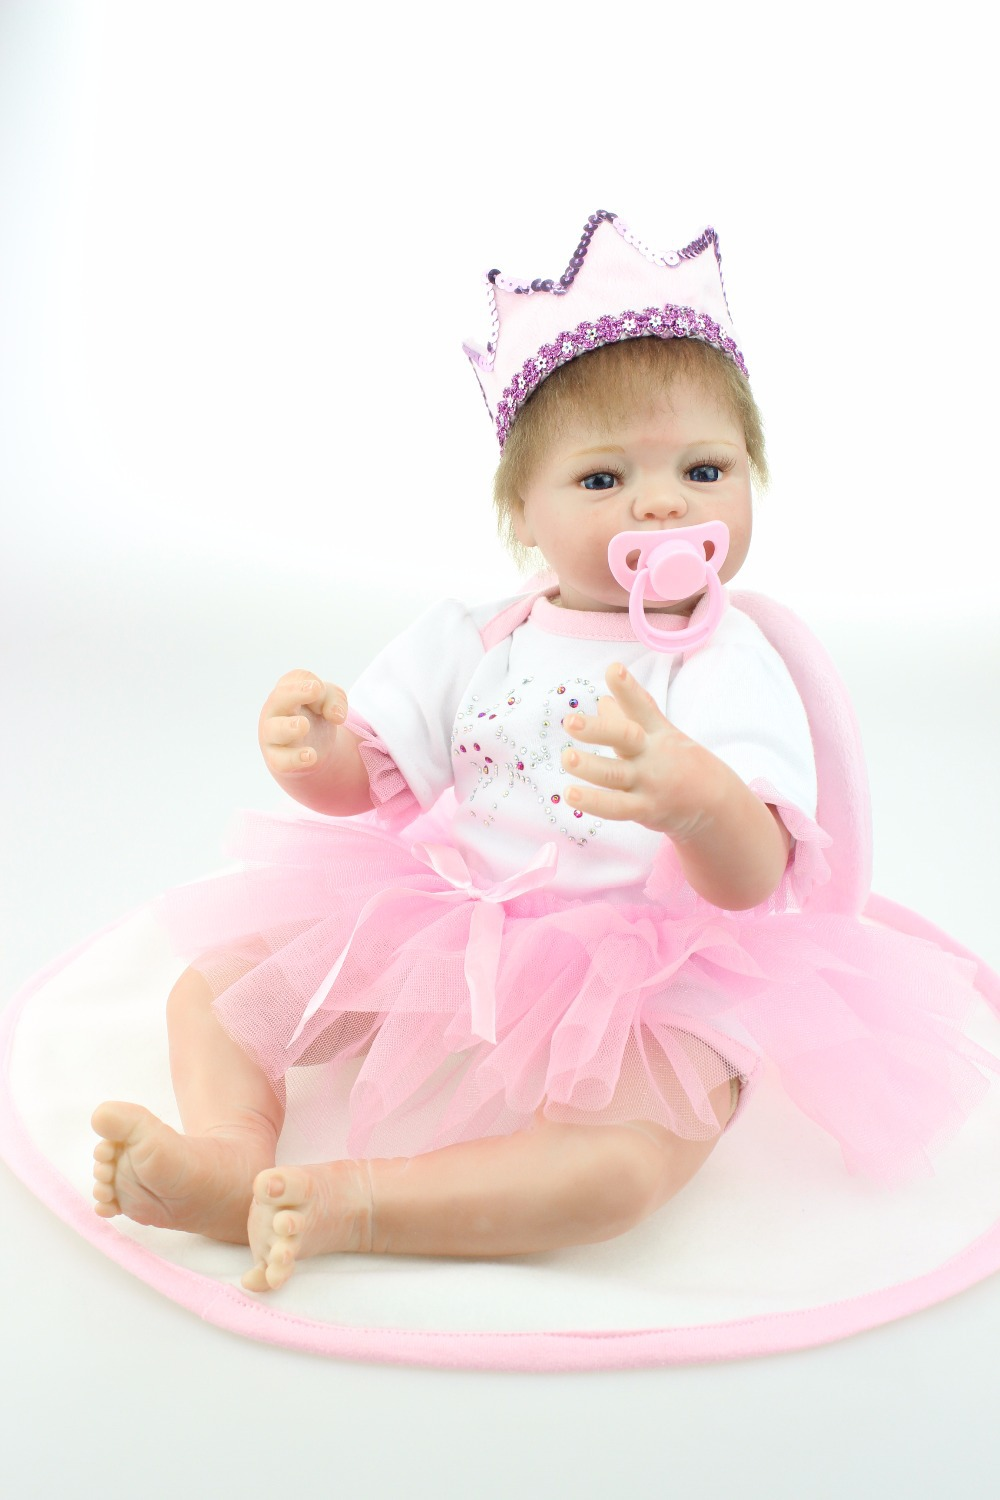 New Design 20 inches newborn baby doll soft mohair living doll cloth body toys for your daughter new 23 inches lm230wf5 tld1 1920 x1080 lm230wf5 tld1 lm230wf5tld1 tld2